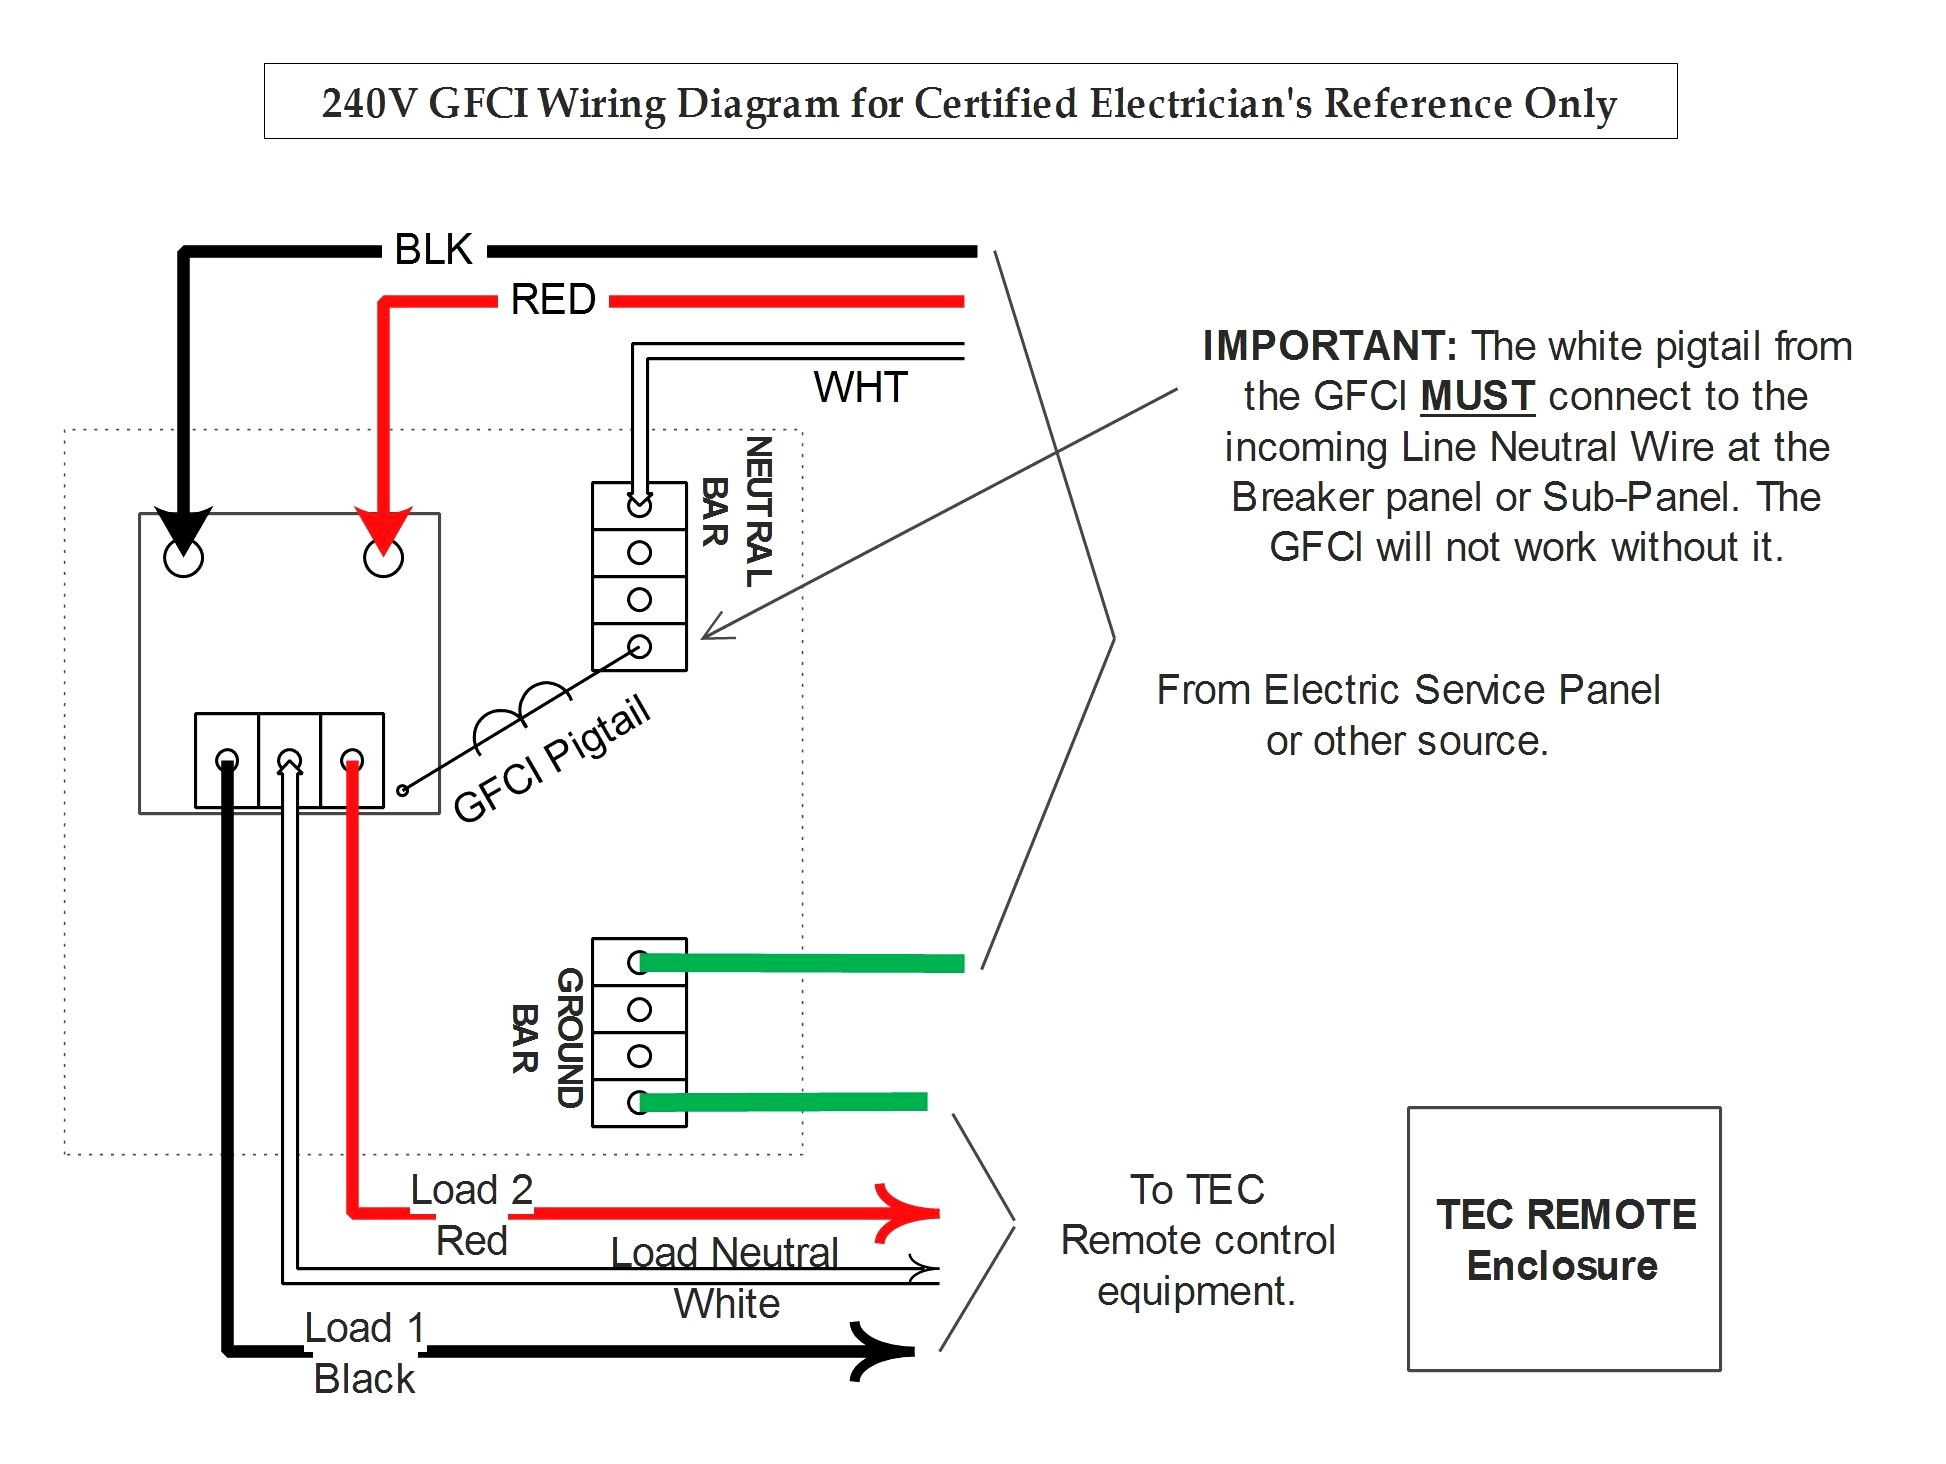 boat lift motor wiring diagram boat lift motor wiring diagram boat lift motor wiring diagram sample